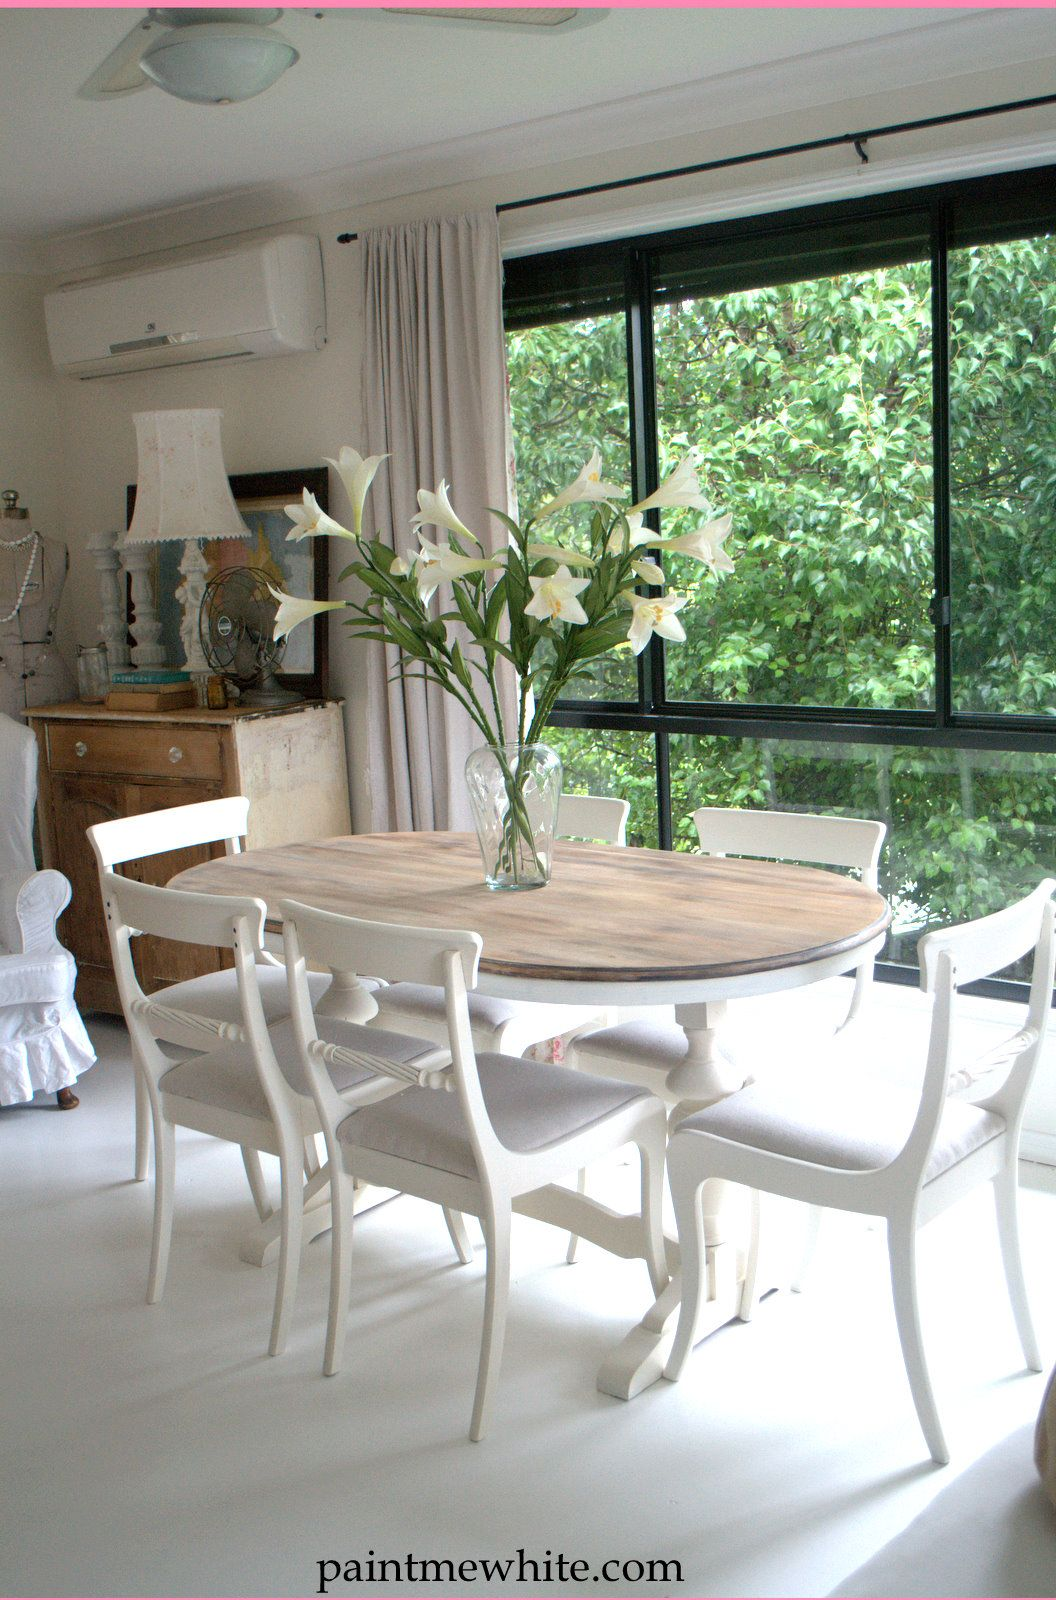 paint me white dining table makeover ideas diy dining table makeover kitchen table. Black Bedroom Furniture Sets. Home Design Ideas